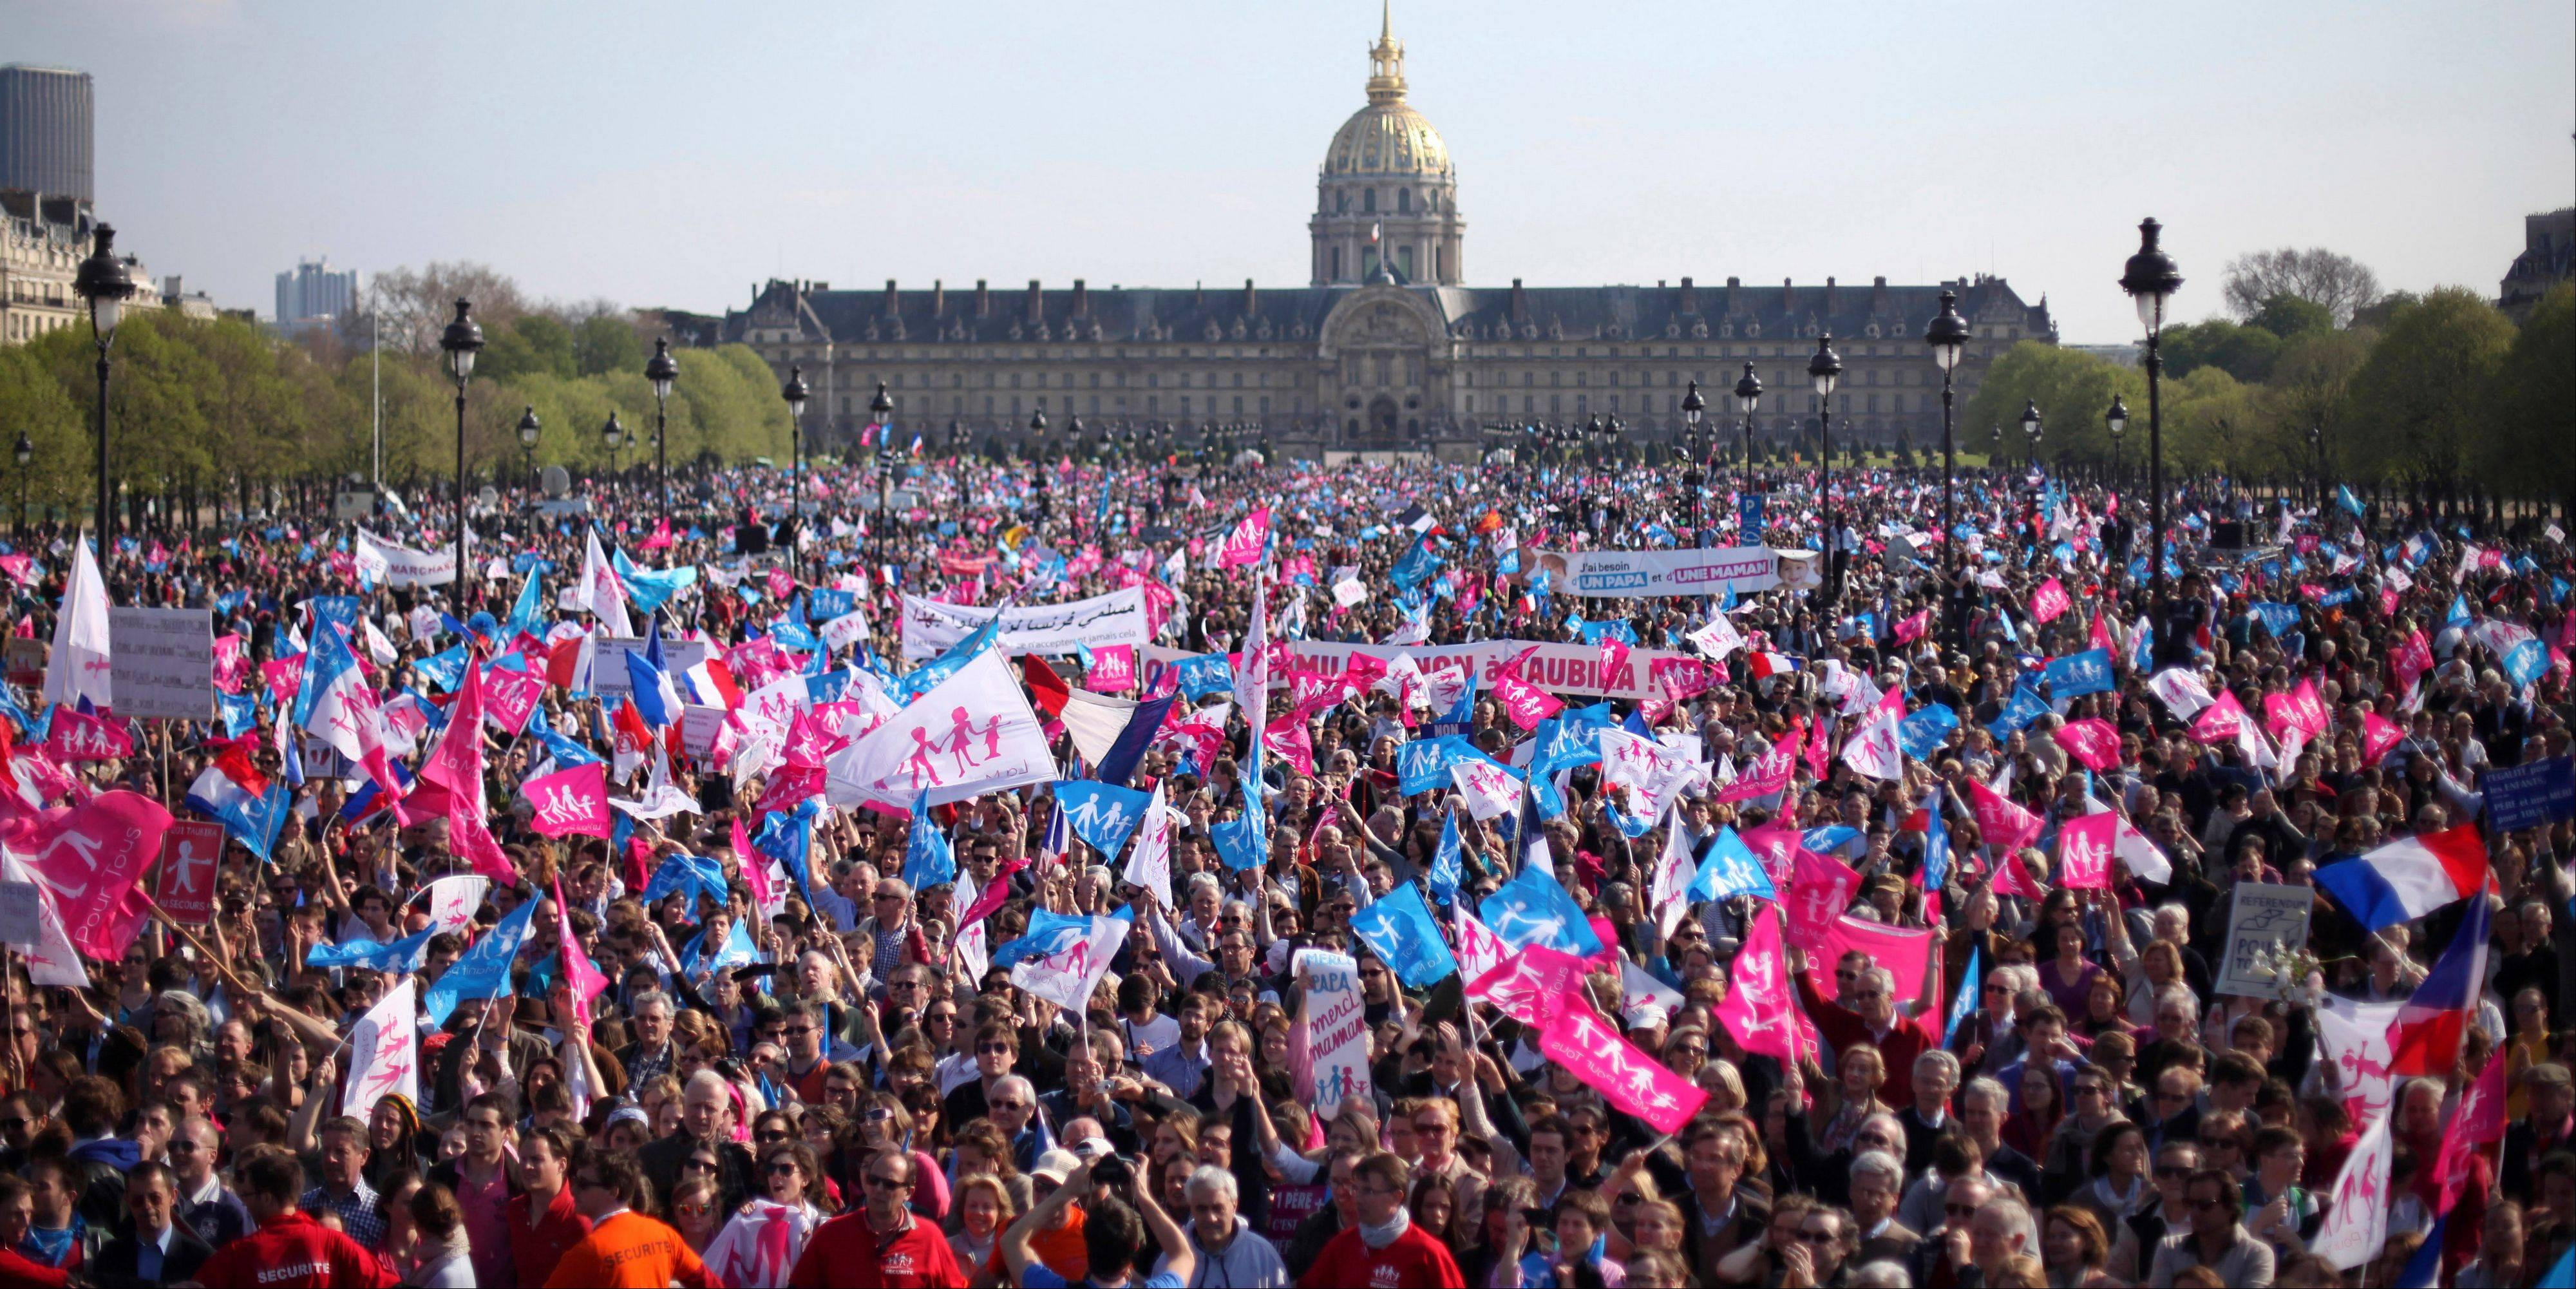 Demonstrators gathered at the Invalides square in Paris, during a rally to protest against French President Francois Hollande�s social reform on gay marriage and adoption.